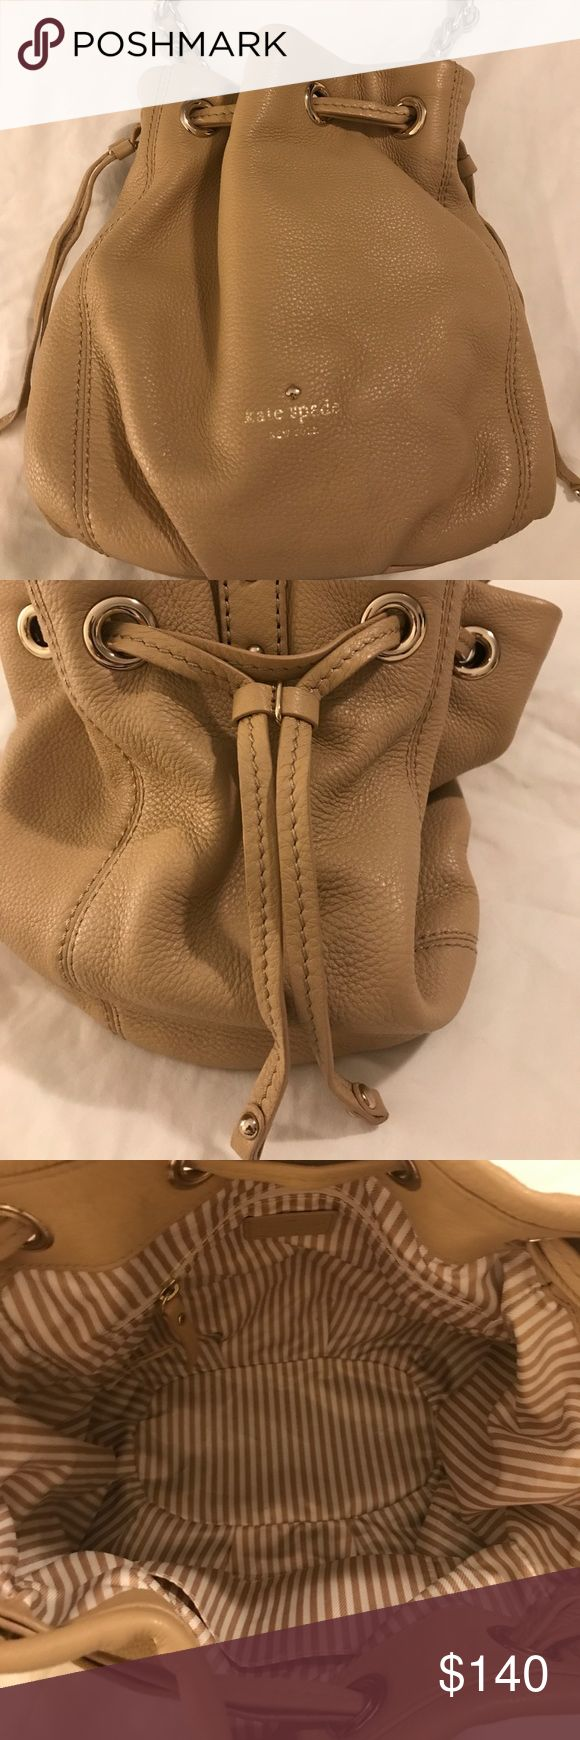 NEW KATE SPADE COBBLEHILL KATIE BUCKET BAG!!! Very sharp beige slouchy leather shoulder bag with a rounded shape is cinched with double drawstrings and topped with a chain embellished strap in gold hardware.  Inside features a zippered pocket and a flap pocket. kate spade Bags Shoulder Bags